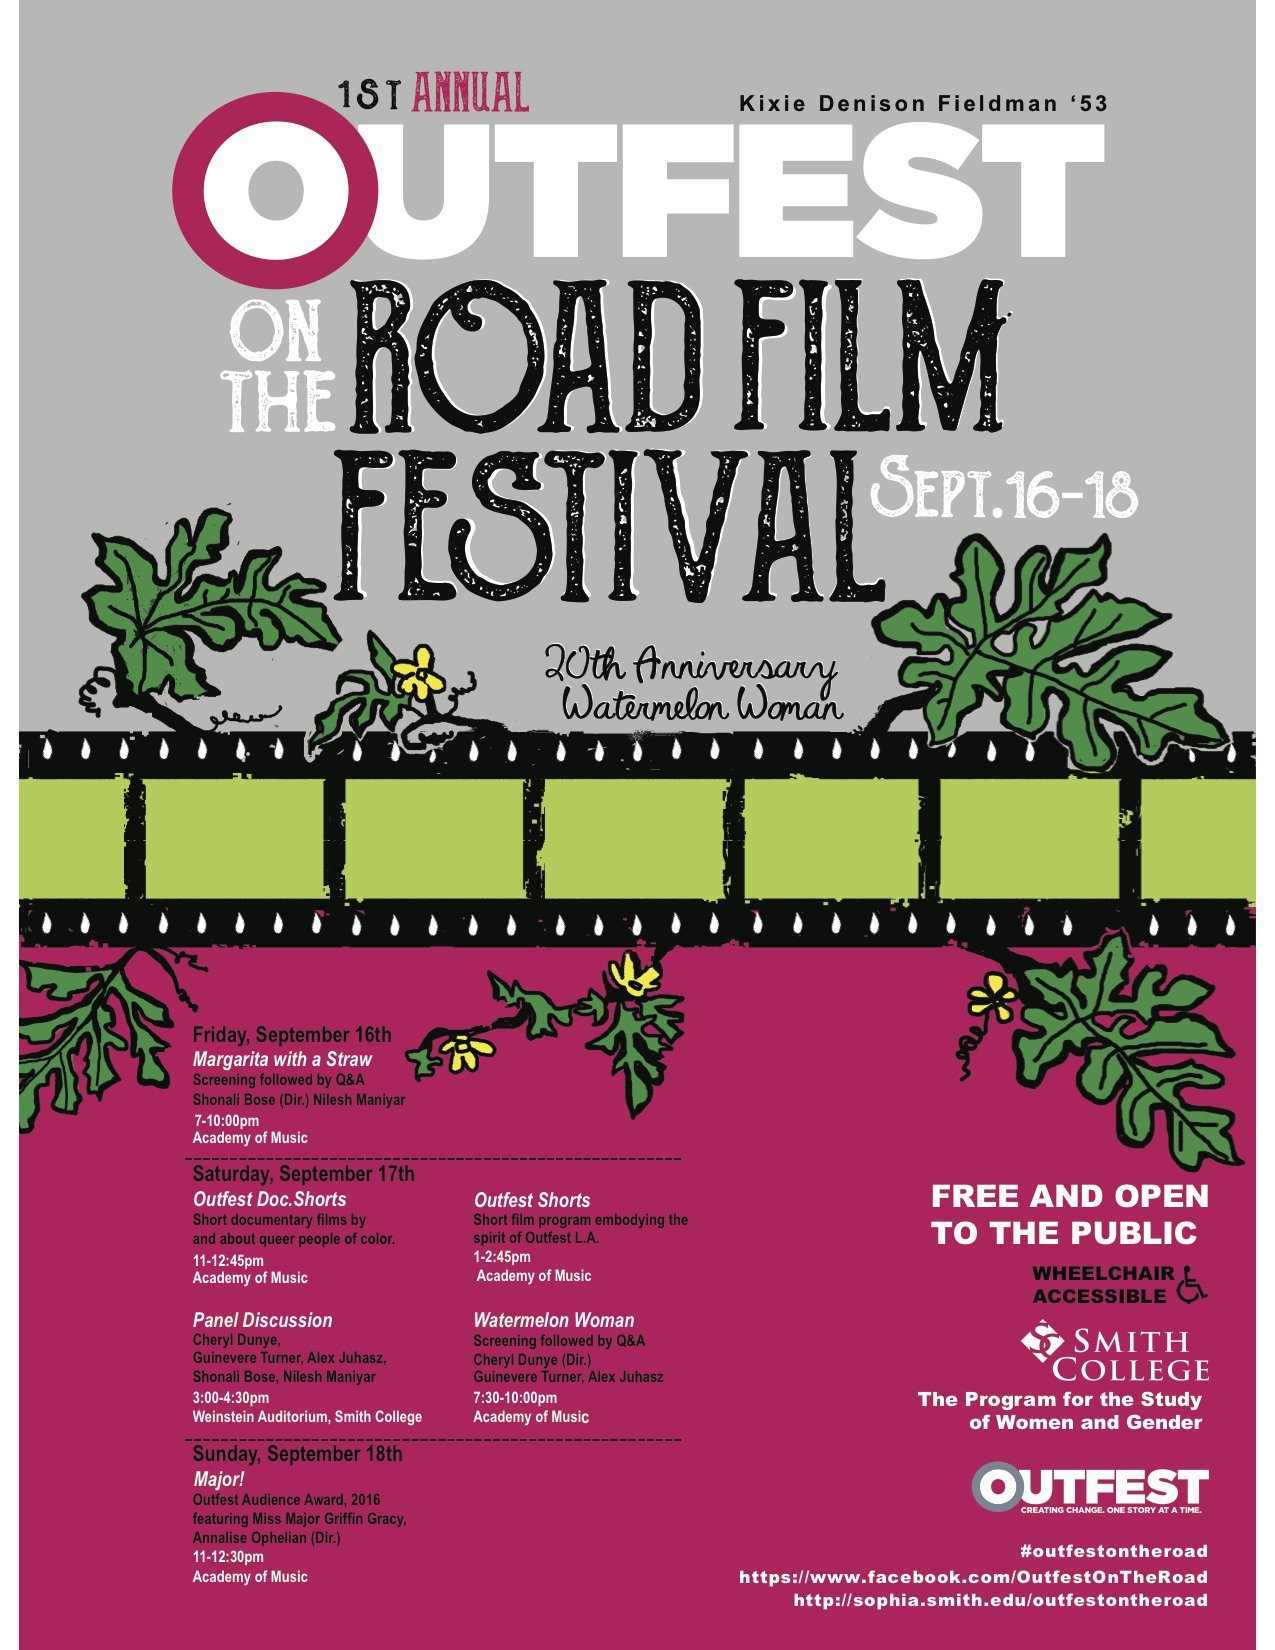 The Program for the Study of Women and Gender is excited to announce the first annual Outfest onto Road Film Festival. Outfest on the Road offers attendees ...